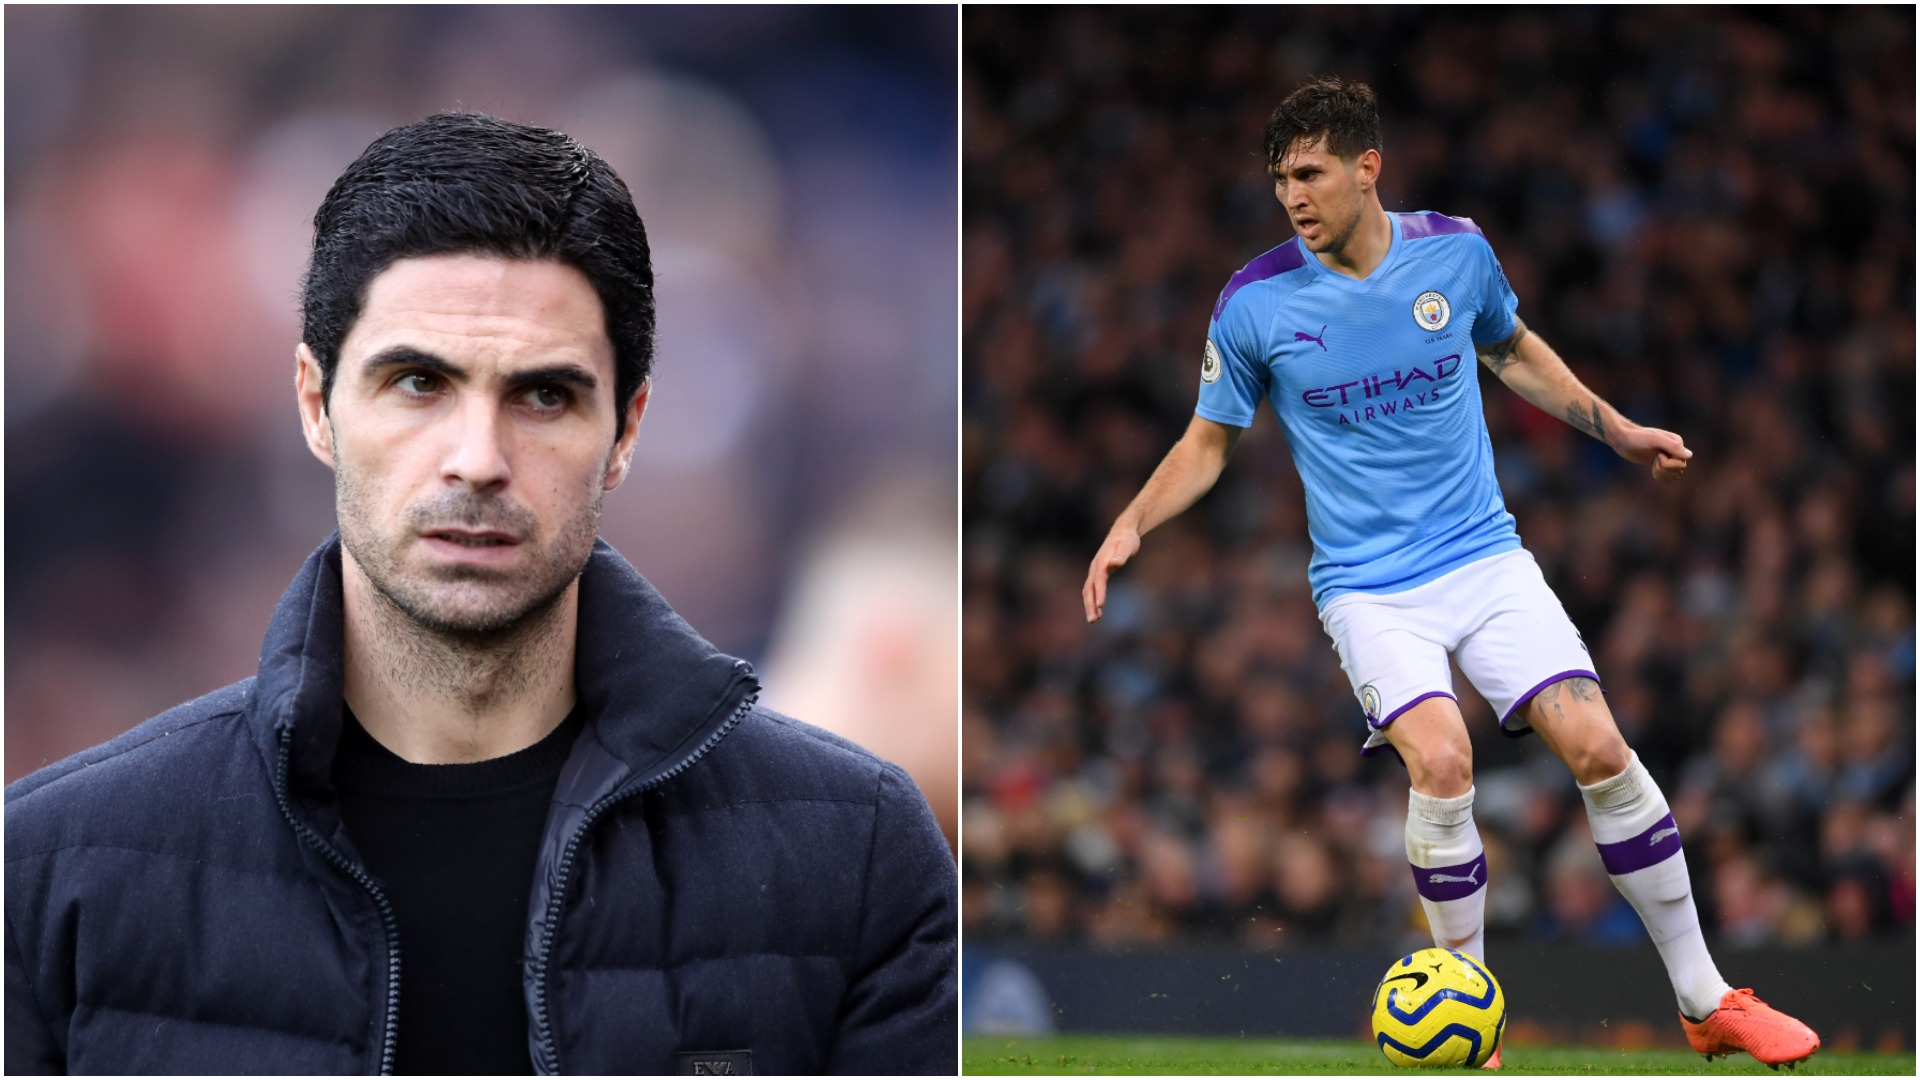 Mikel Arteta believes John Stones is a great player, but the Arsenal head coach has denied the Gunners are interested in the defender.